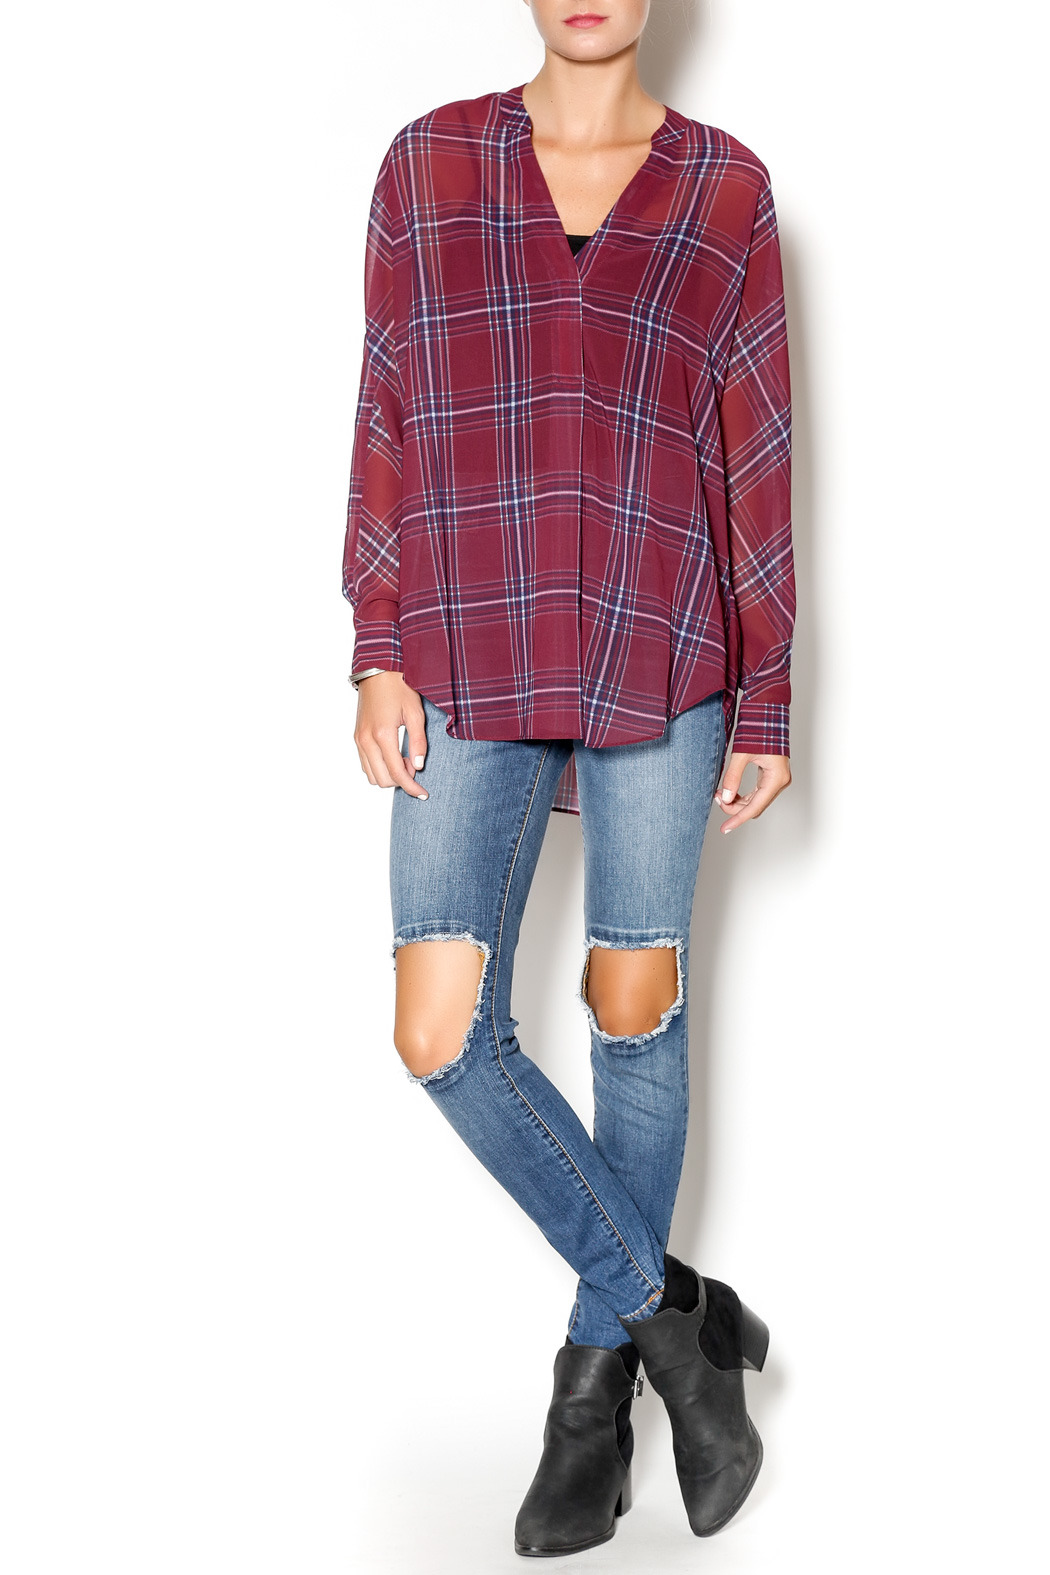 Gentle Fawn West Plaid Blouse - Front Full Image